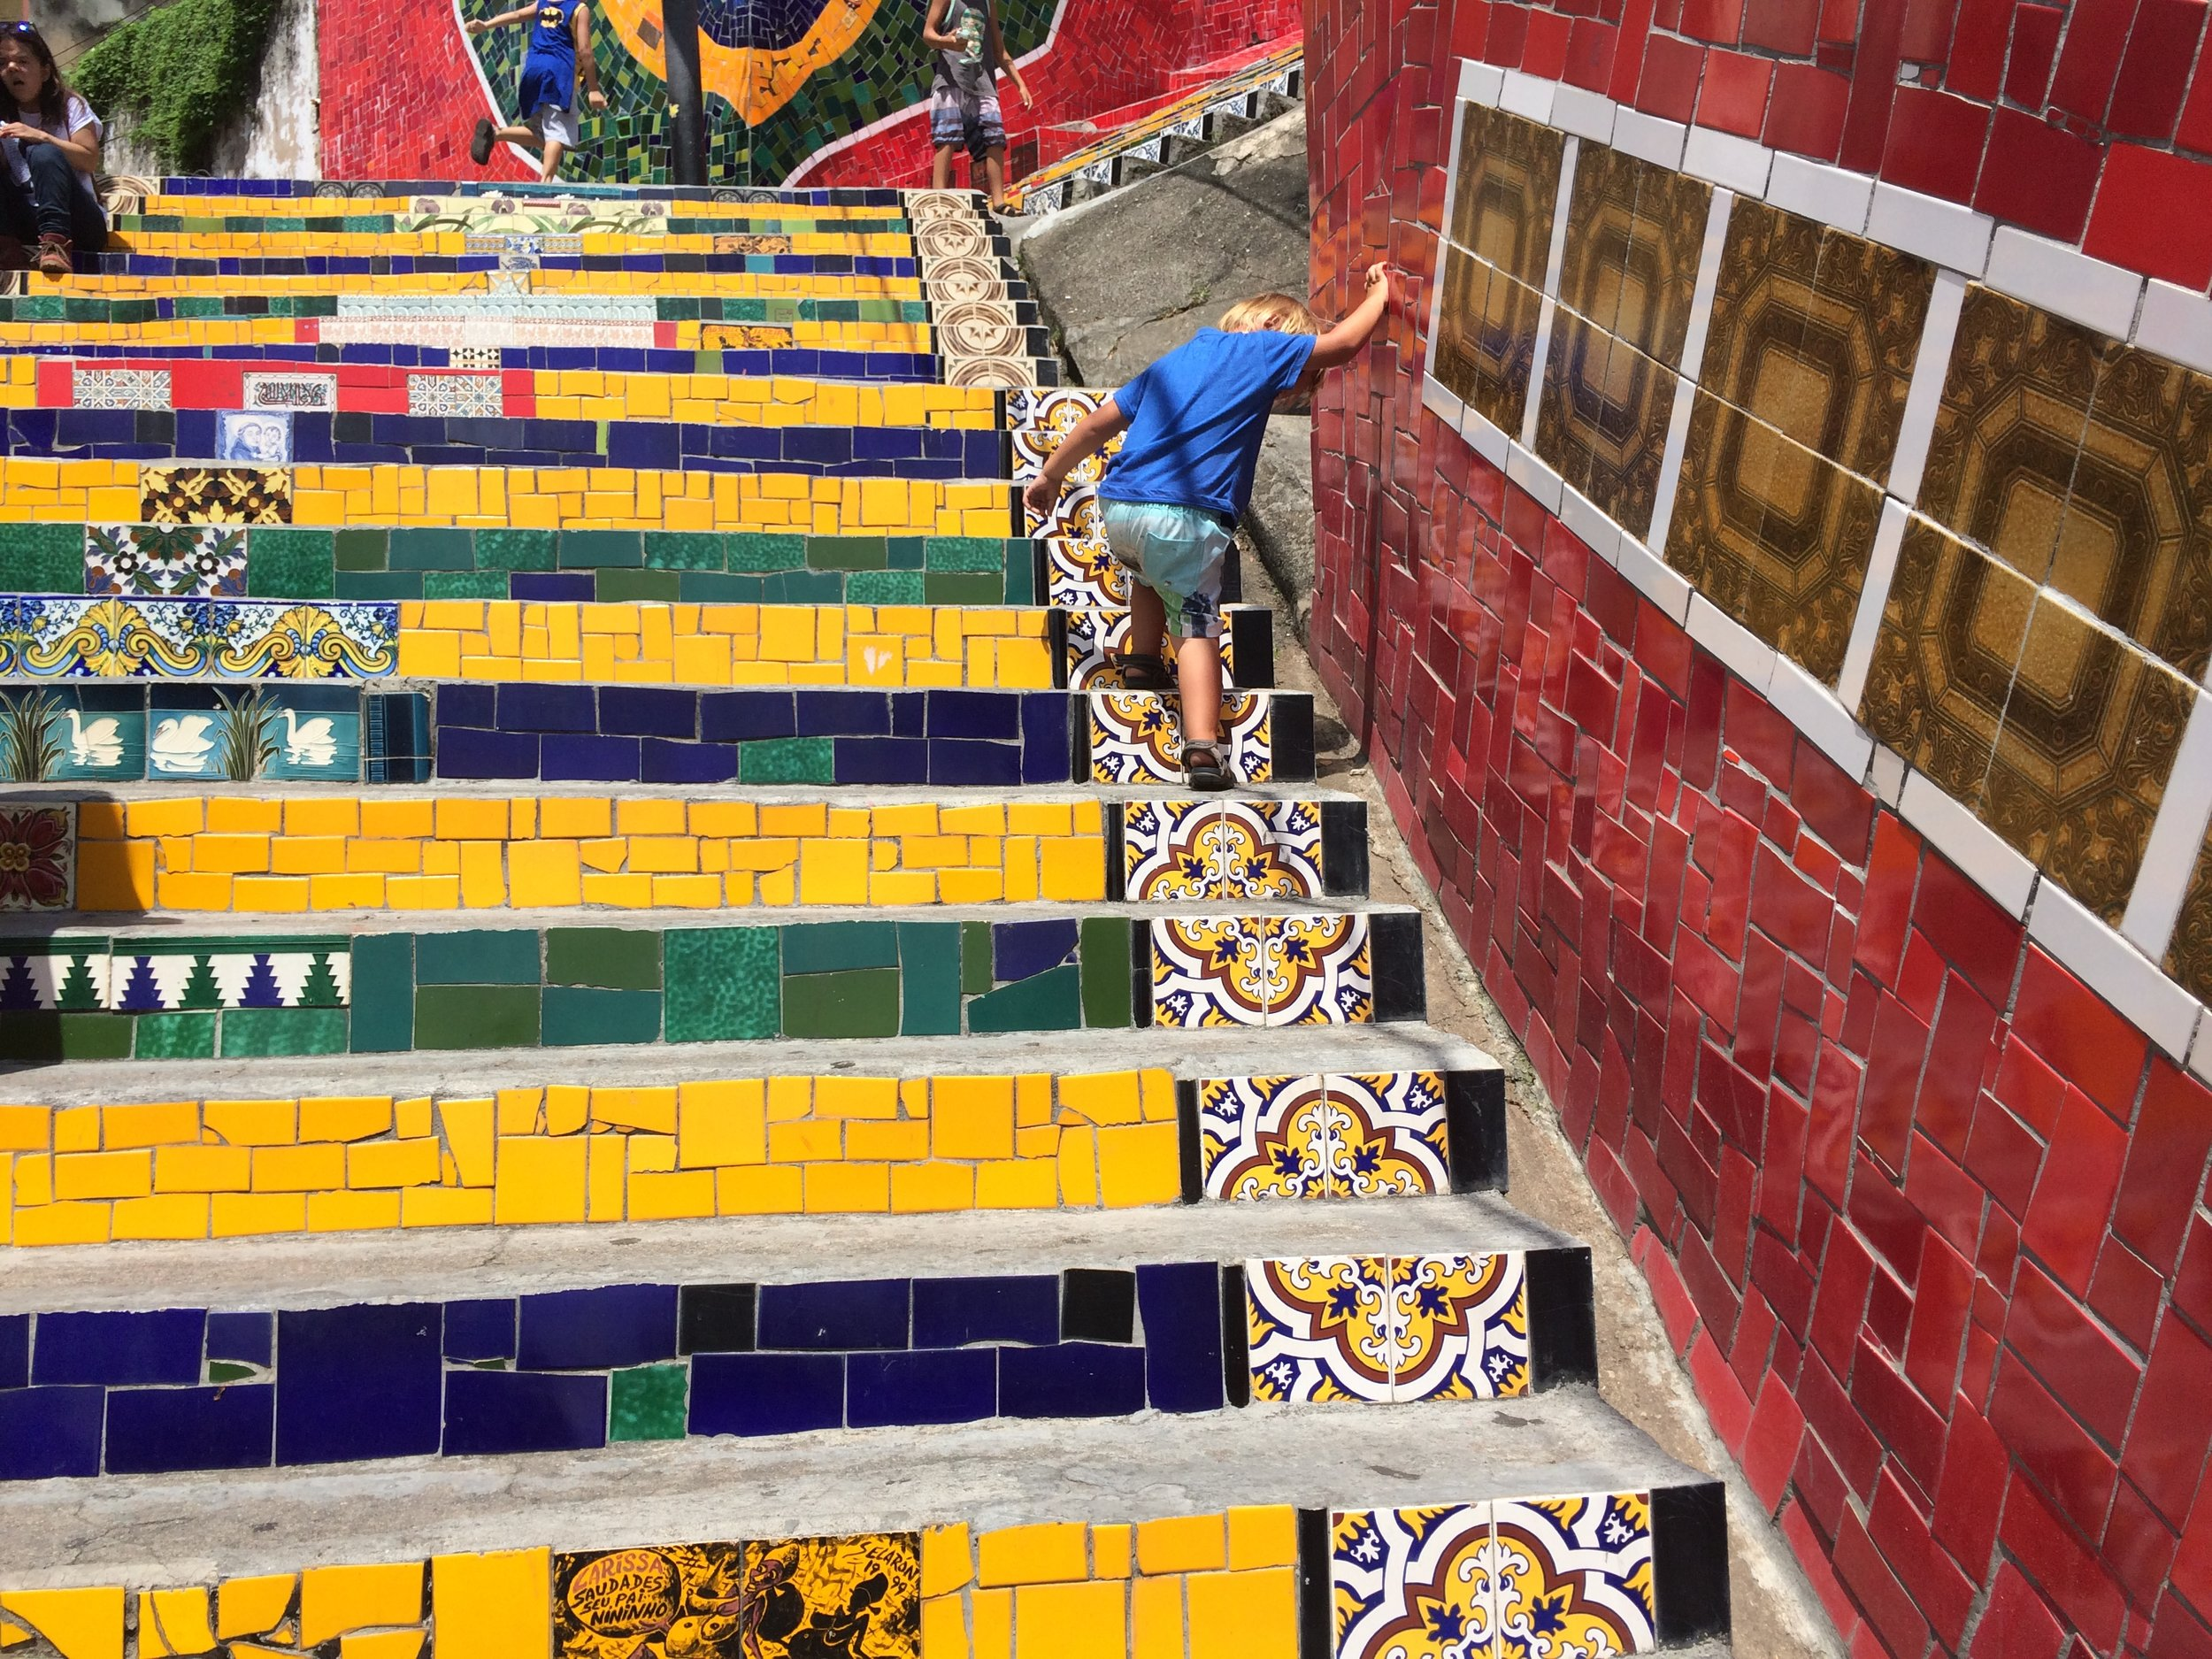 hugo was geting faster at walking up the stairs witch is cool because hugo always i a slow coach and the tiles were beautiful it even had the Simsons.